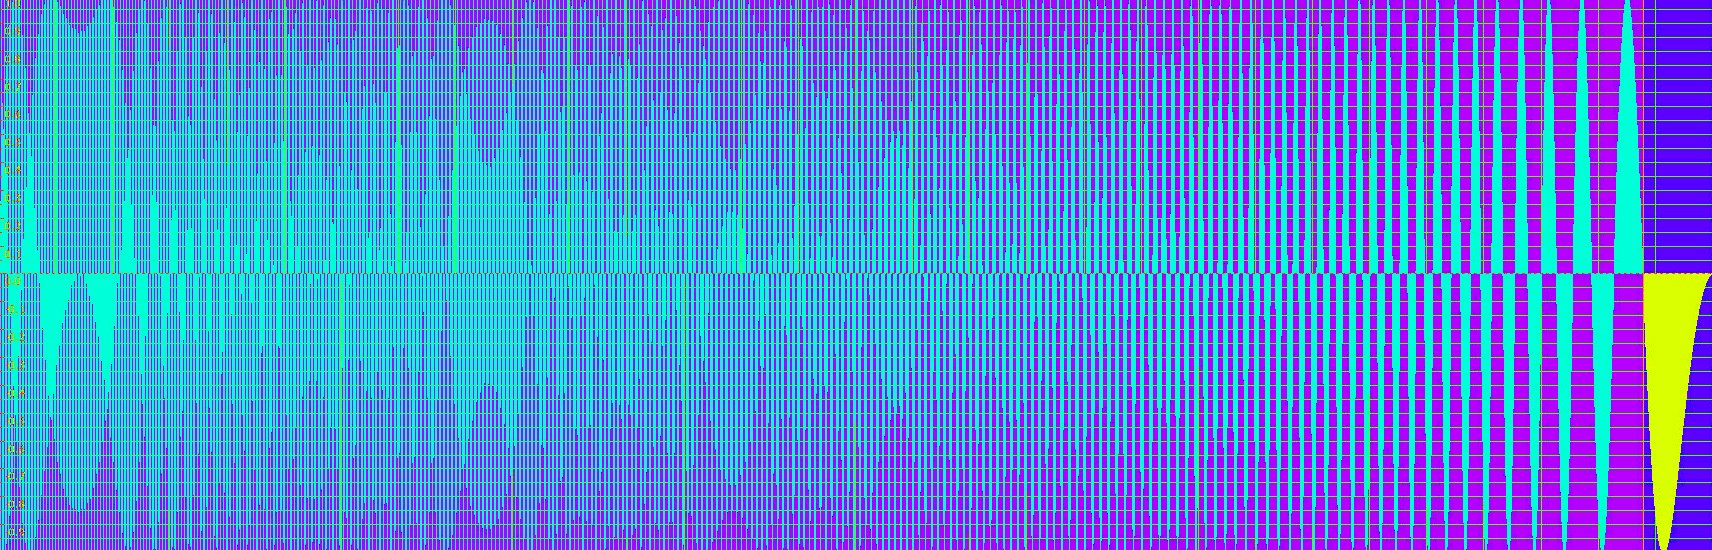 blue and purple sound waves